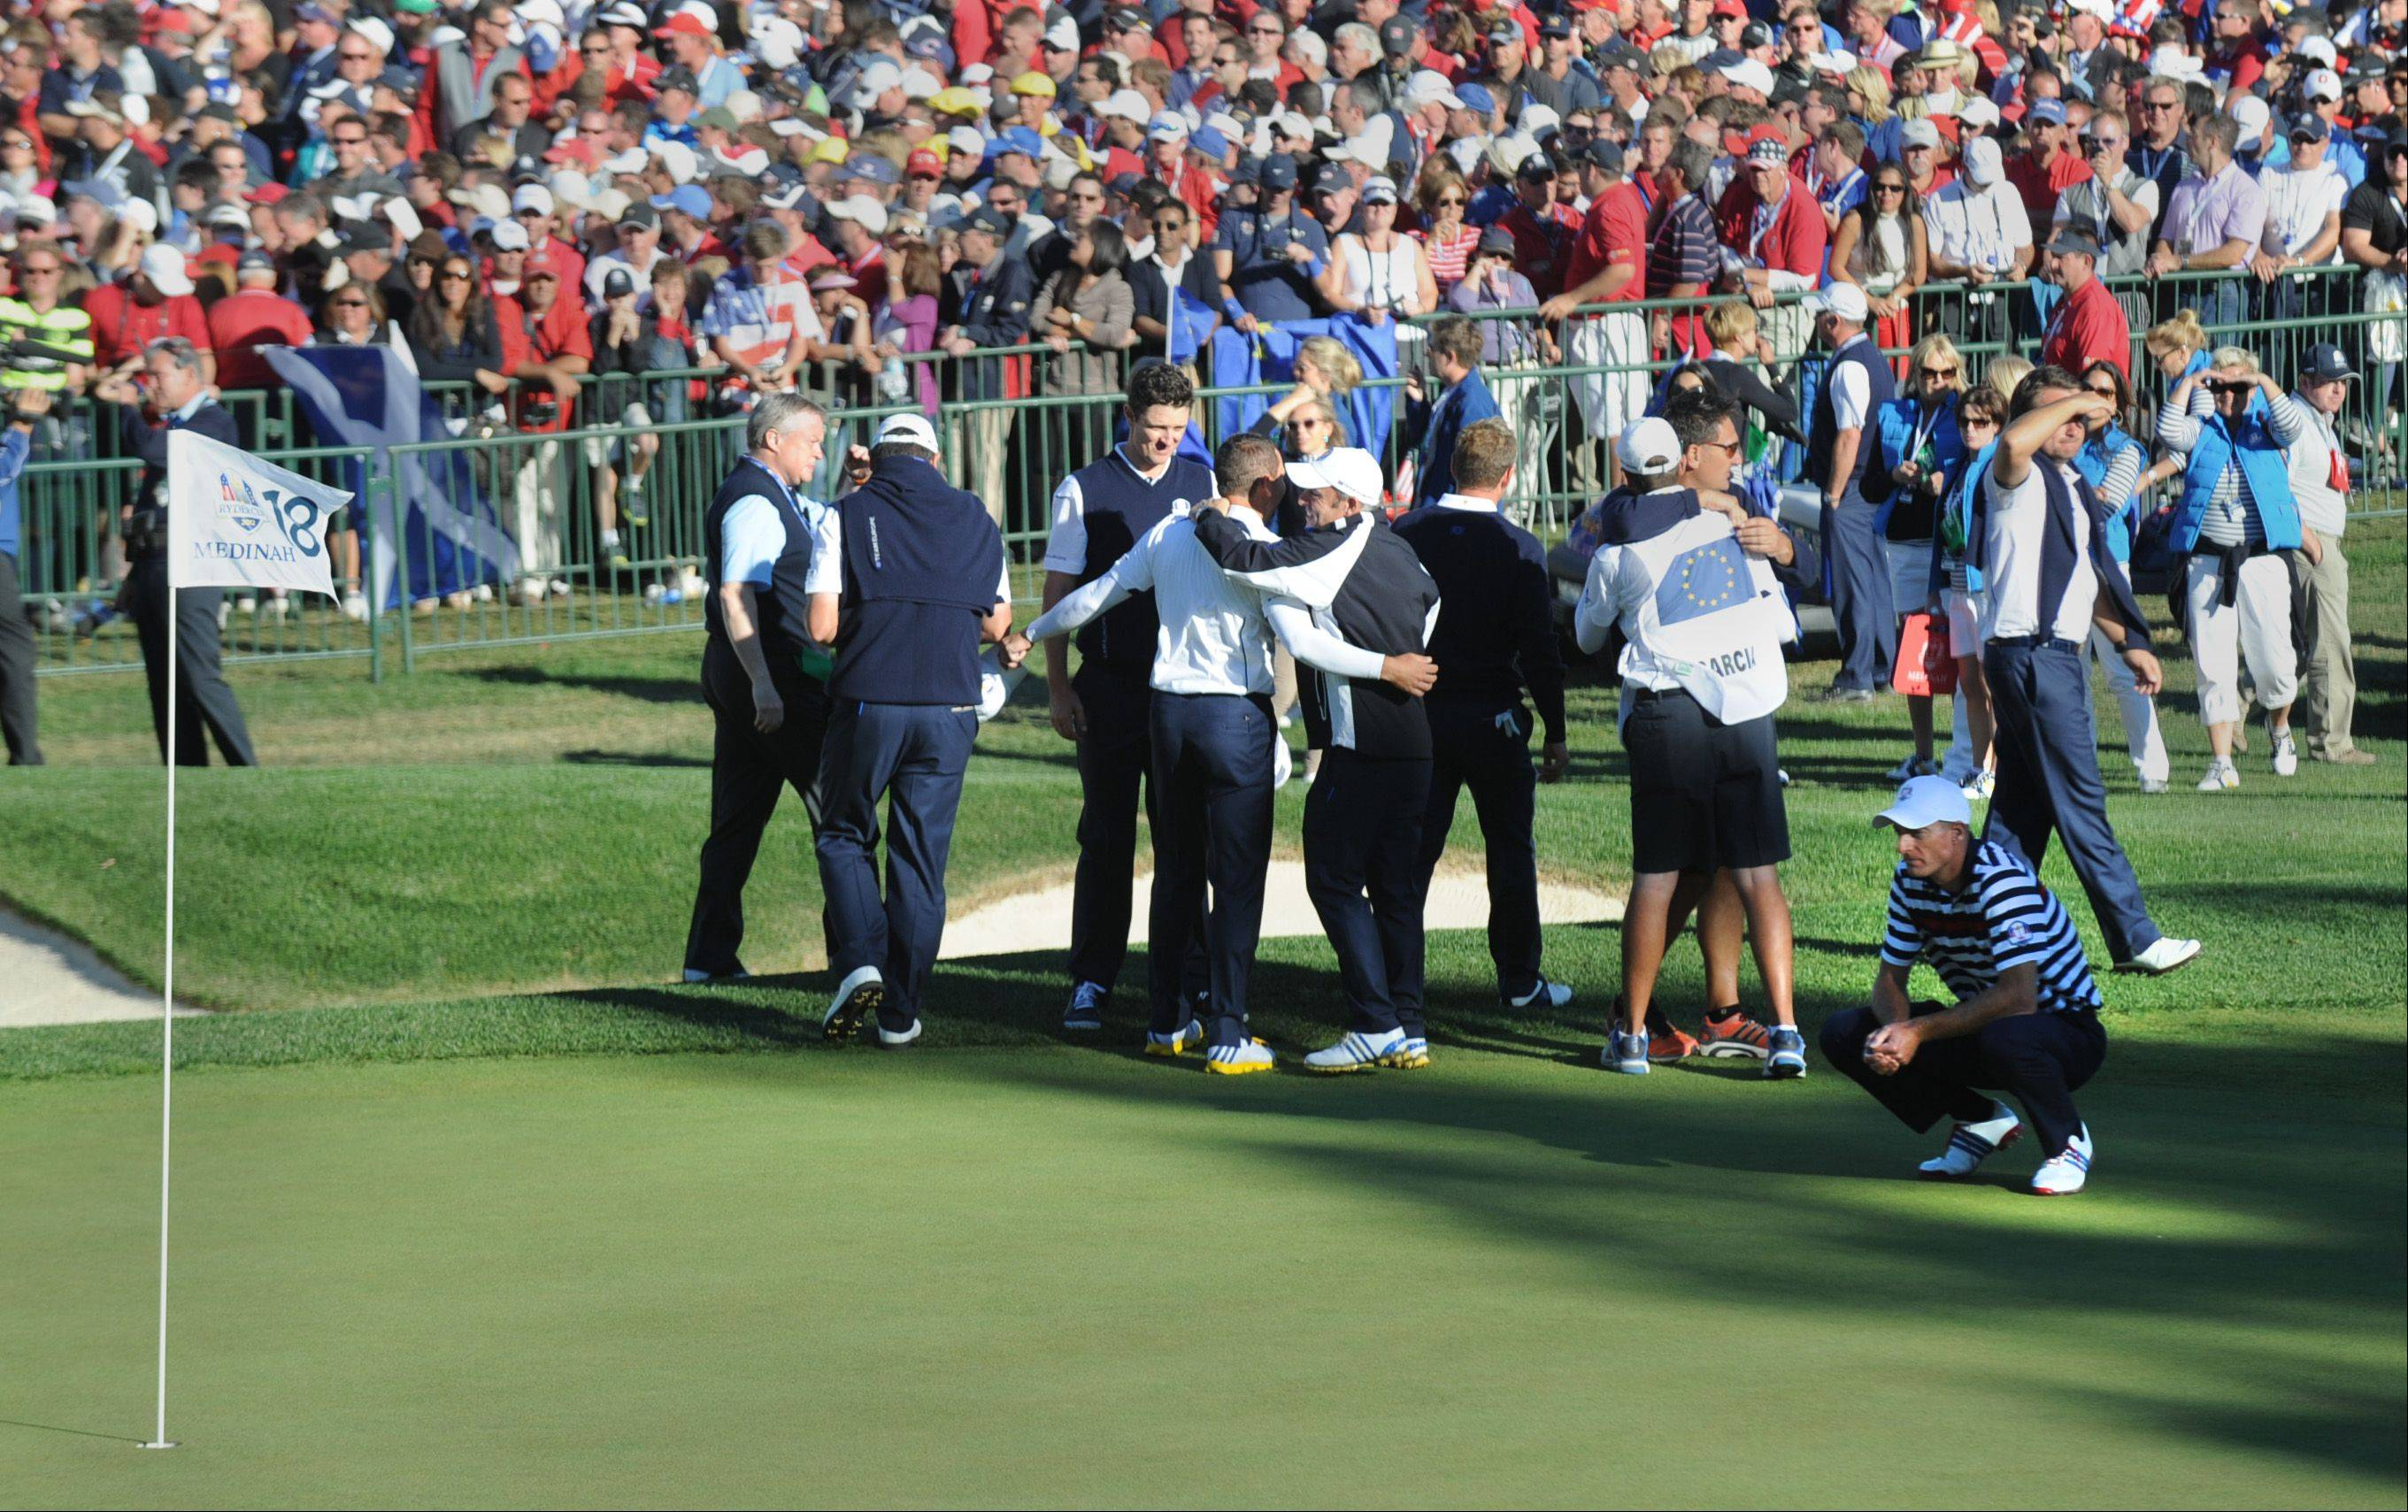 Jim Furyk remains dejected on the 18th green after missing a putt and losing his Ryder Cup singles match to Sergio Garcia as European players and coaches celebrate Sunday.